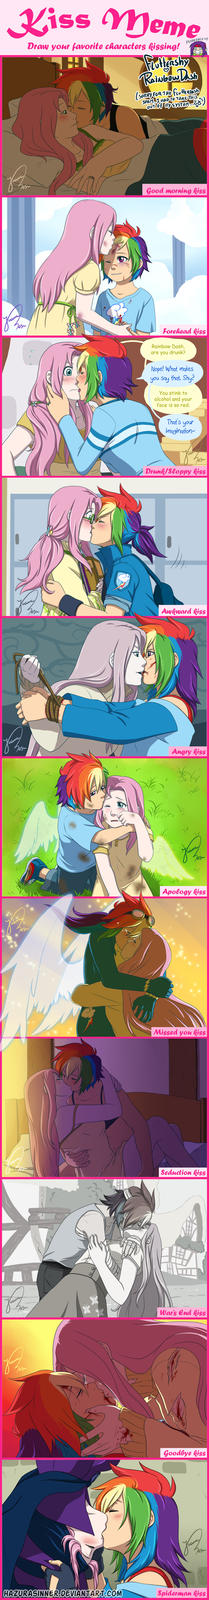 Fluttershy and rainbowdash kissing